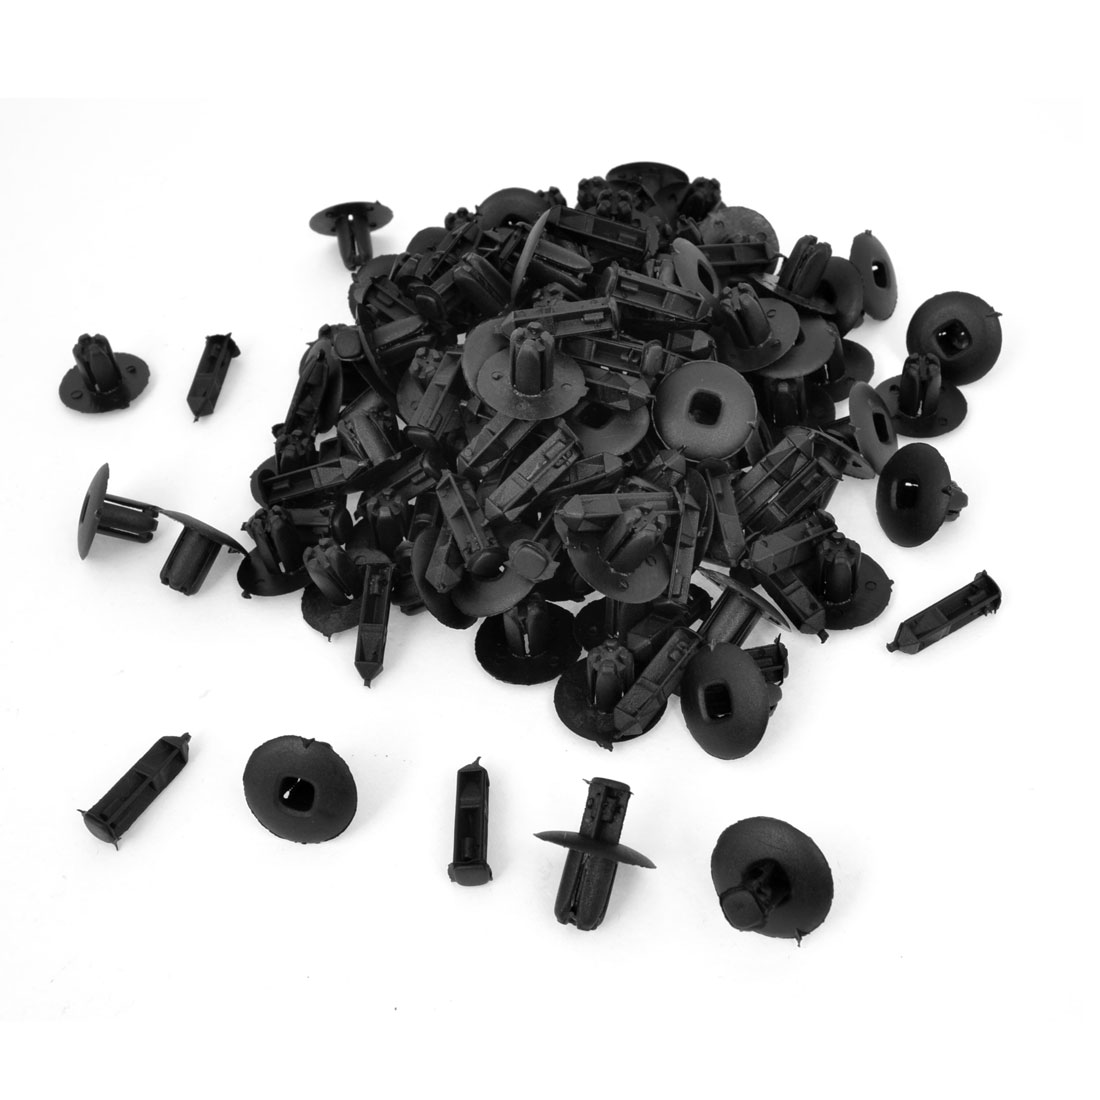 100 Pcs Vehicle Black Push in Type Rivet Plastic Fastener 8mm Hole